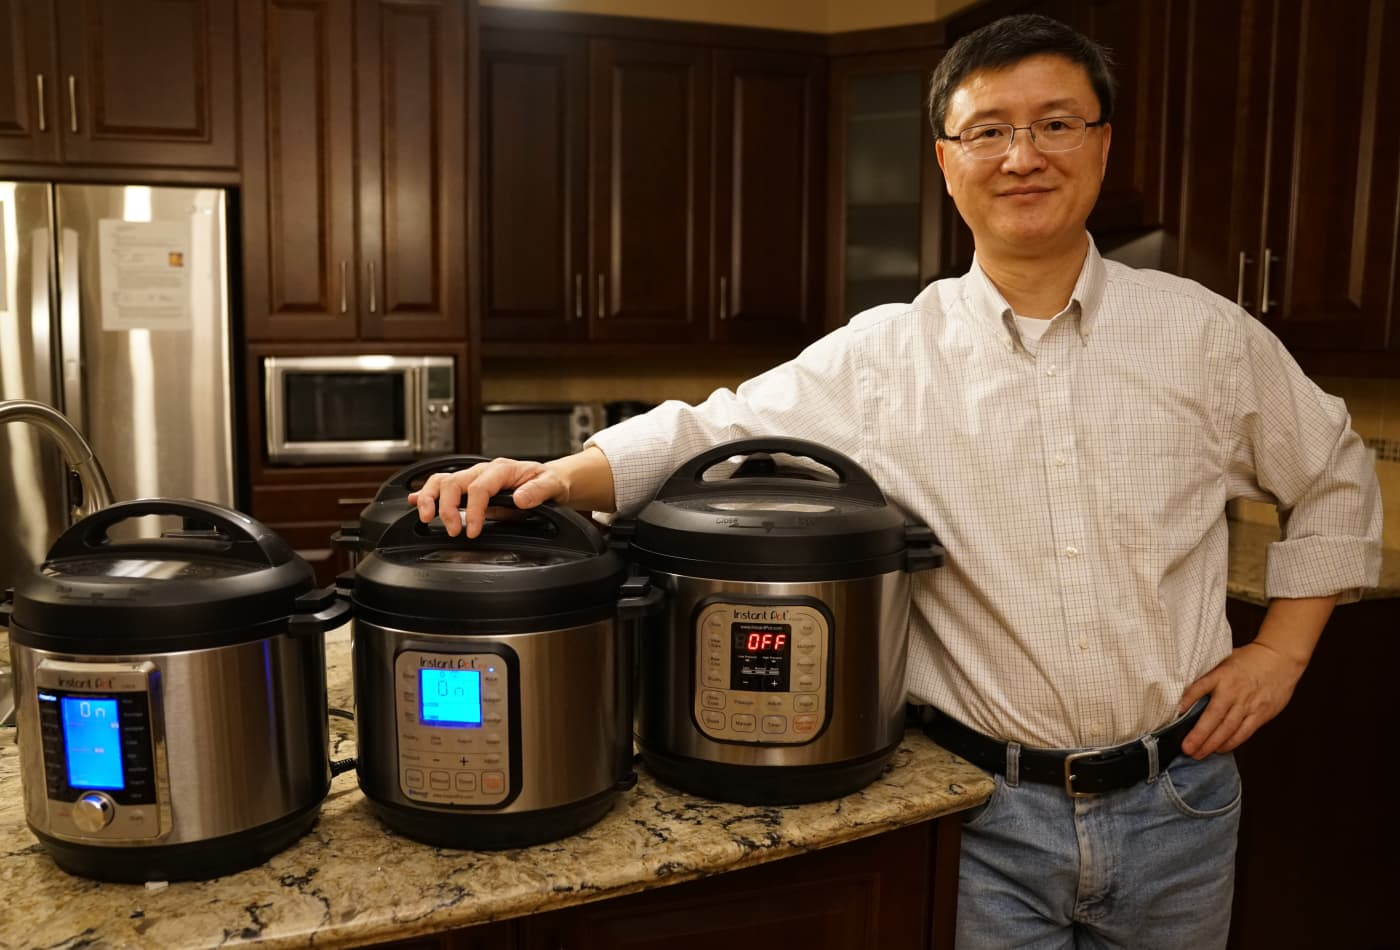 How Instant Pot became a kitchen appliance with a cult following and a best-seller on Amazon